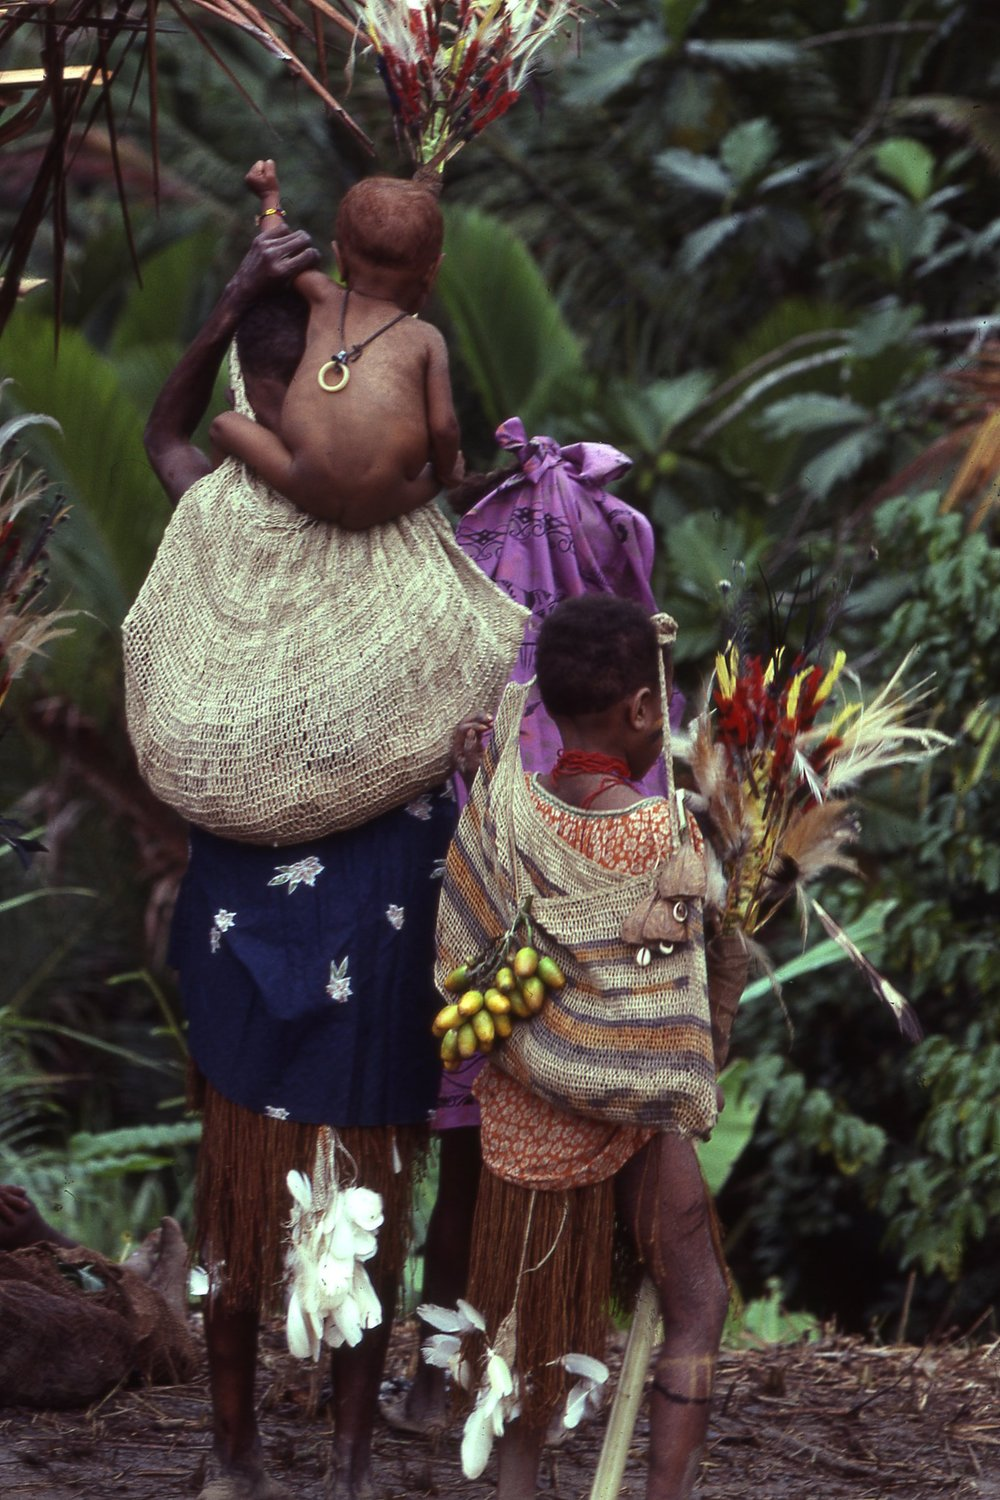 Waina woman and girl wearing string bags and ritual attire (Photo M. MacKenzie).